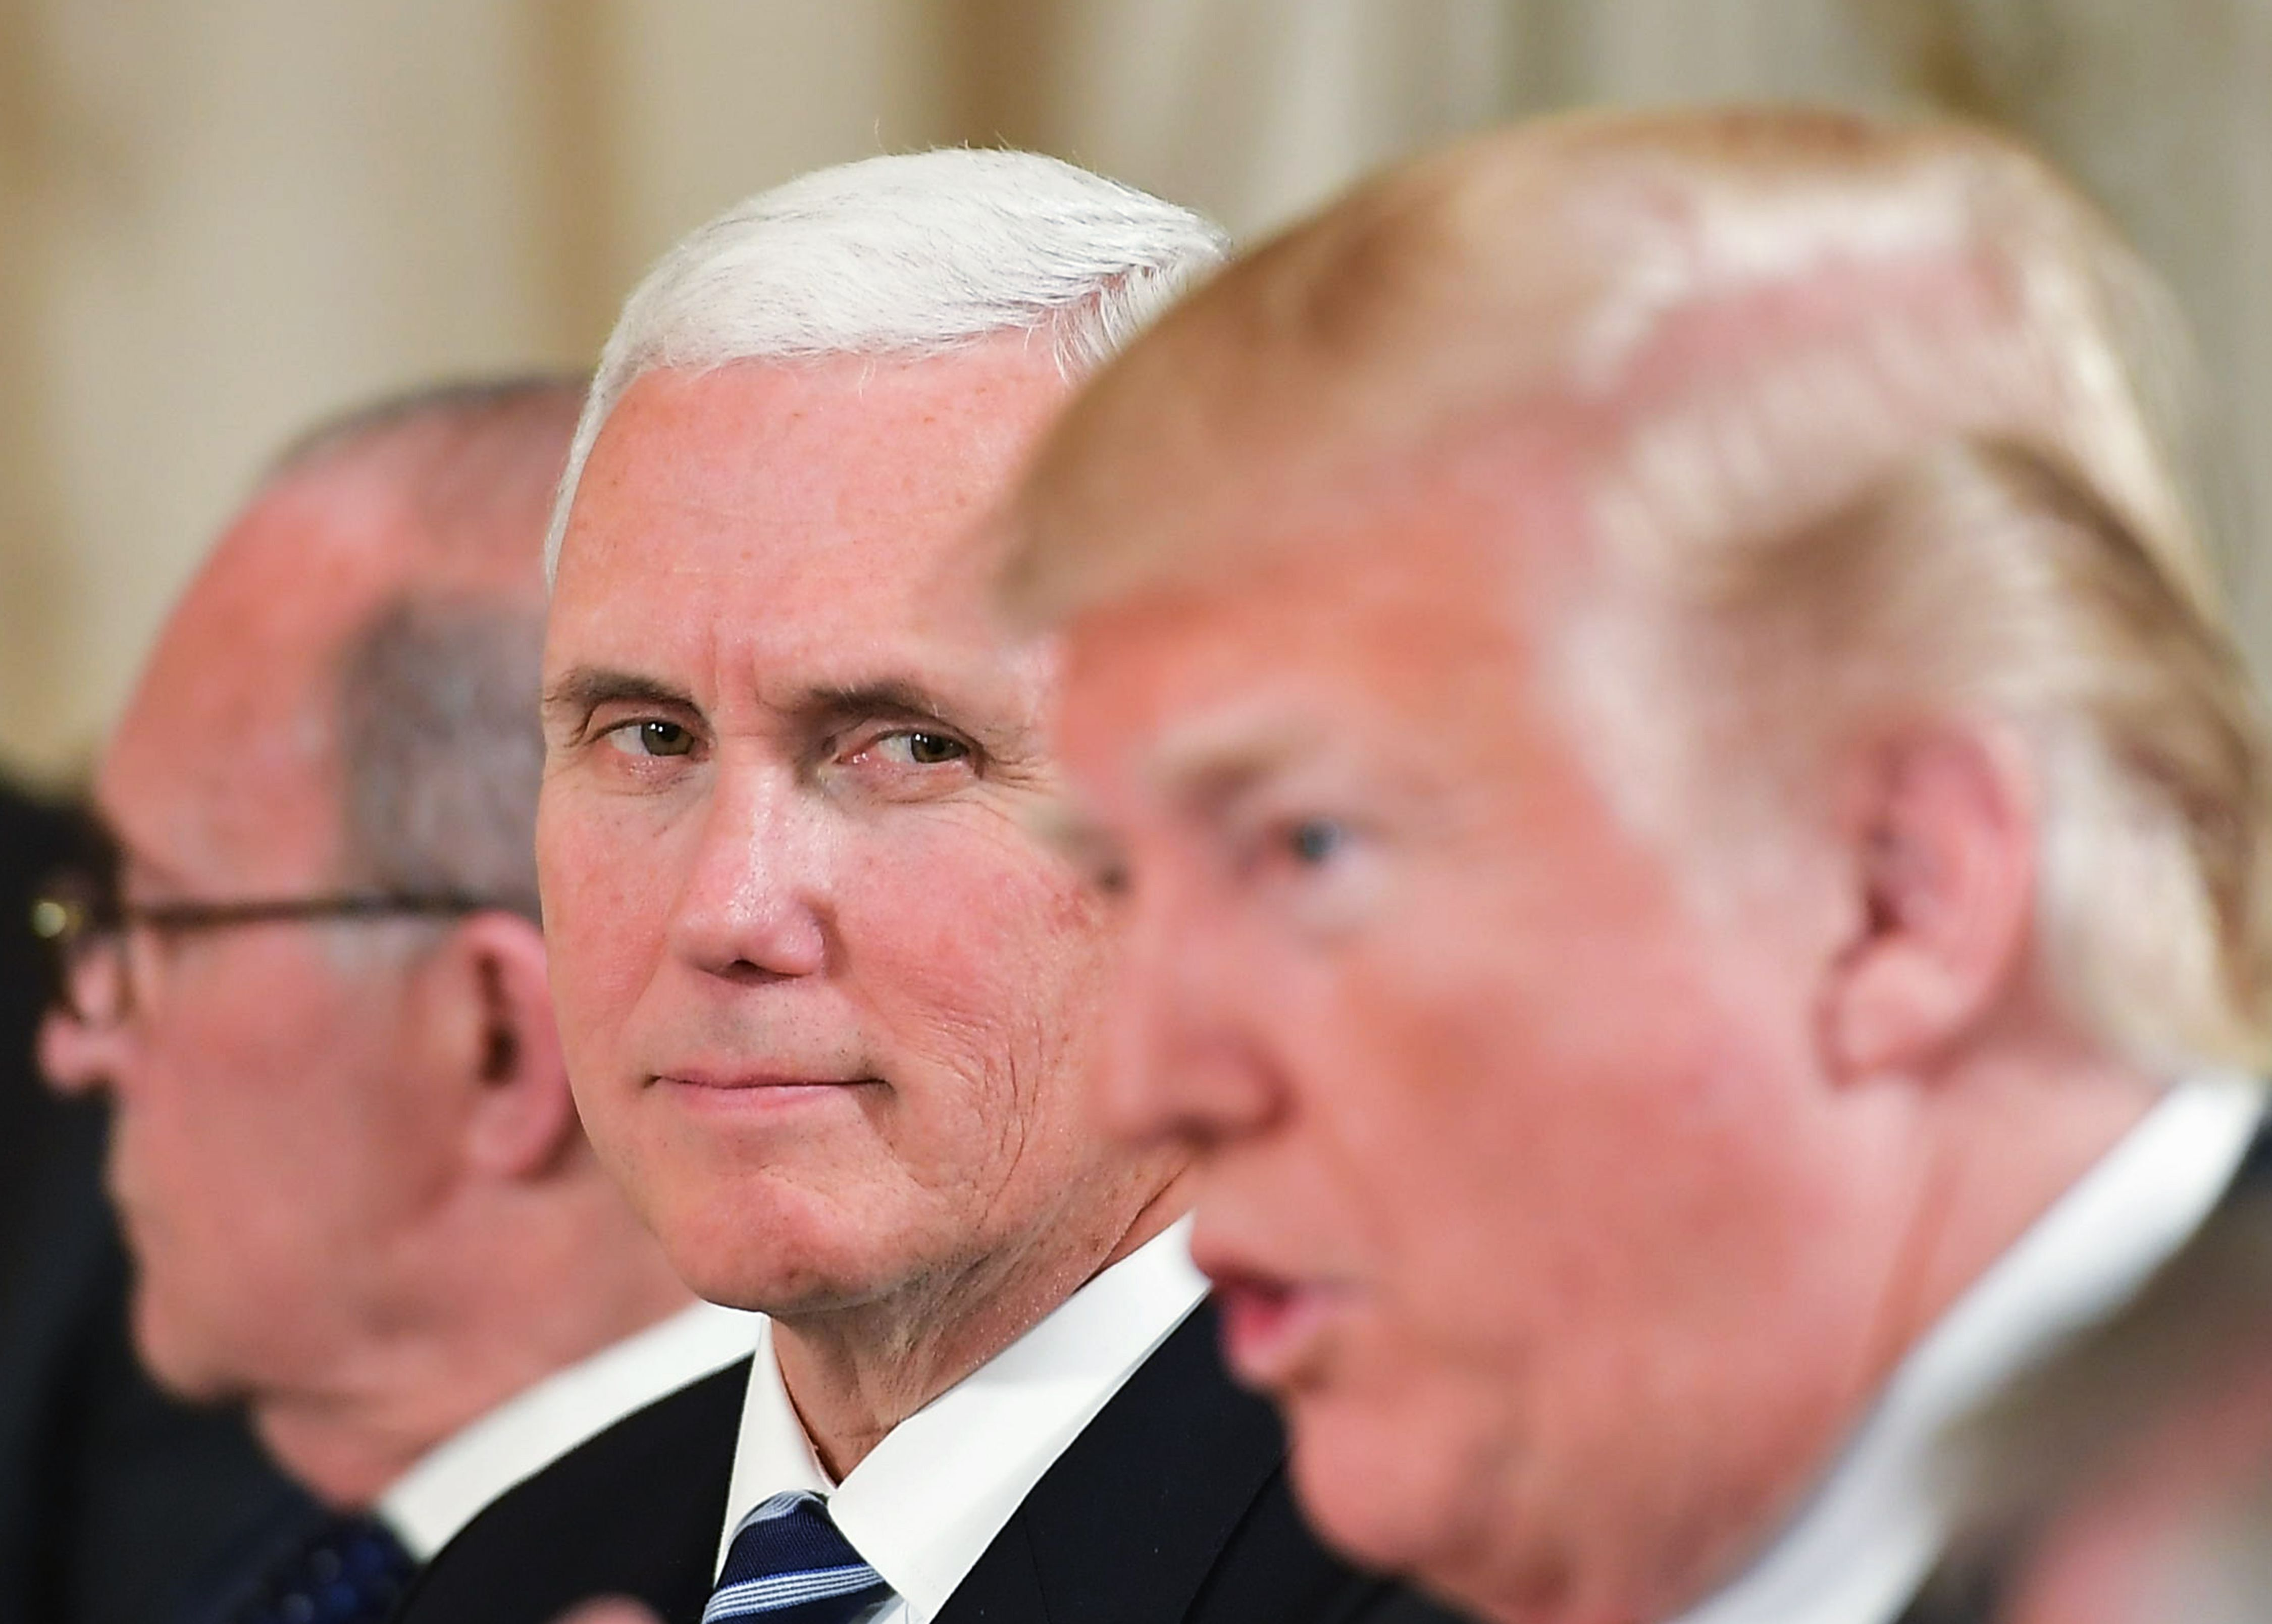 mike pence shoutout to joe arpaio was shameless and disgraceful